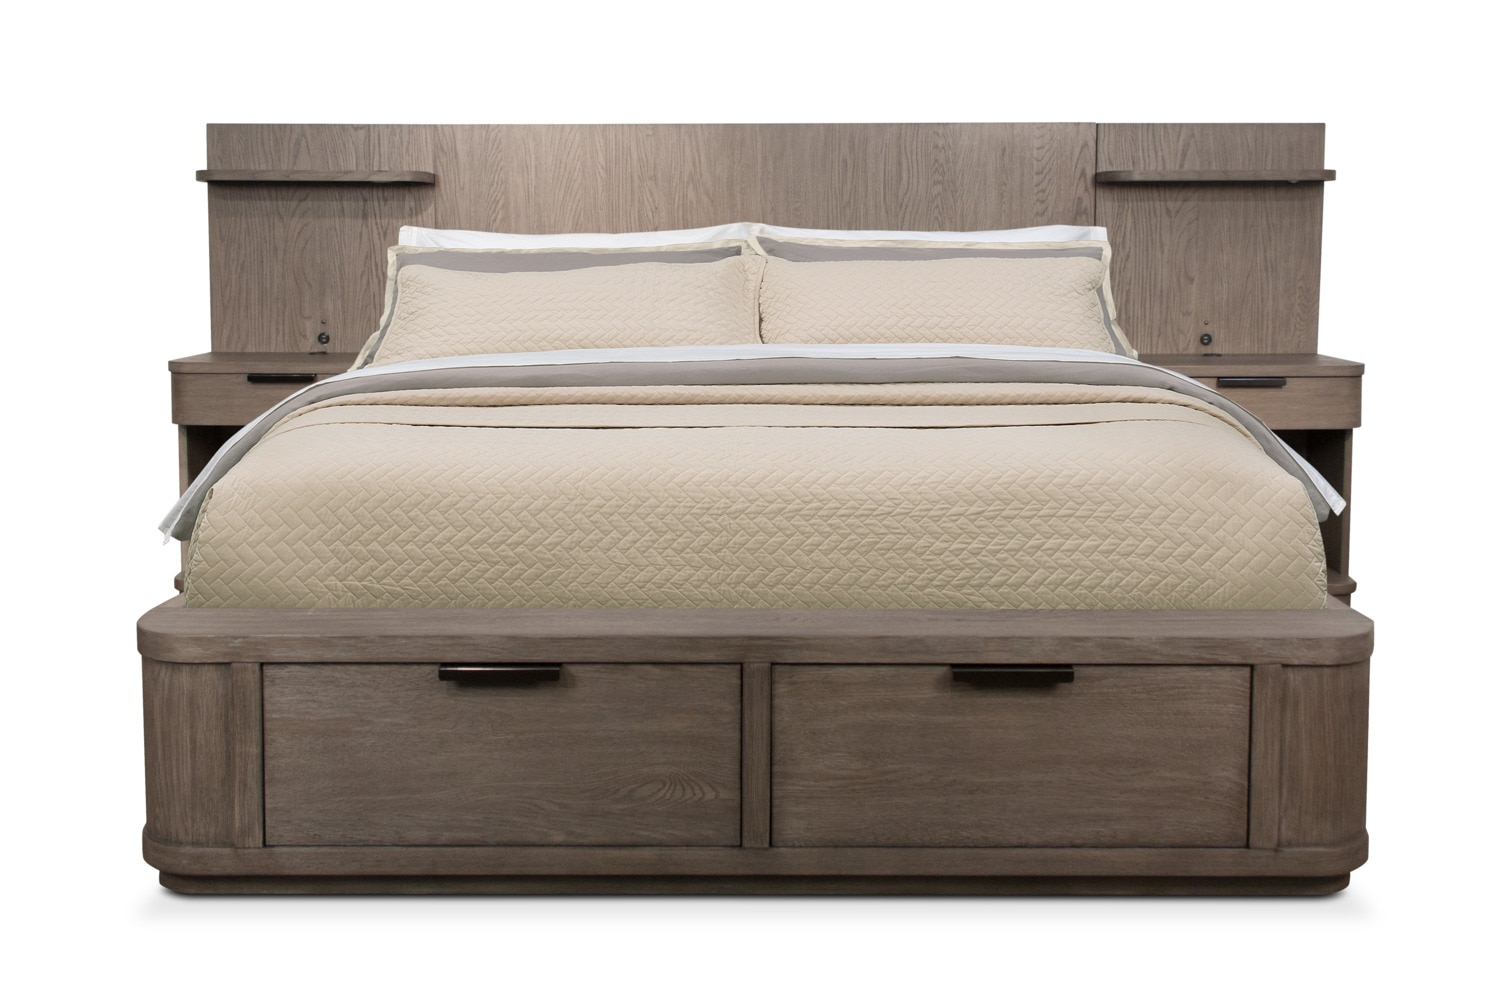 Malibu Queen Low Storage Wall Bed - Gray